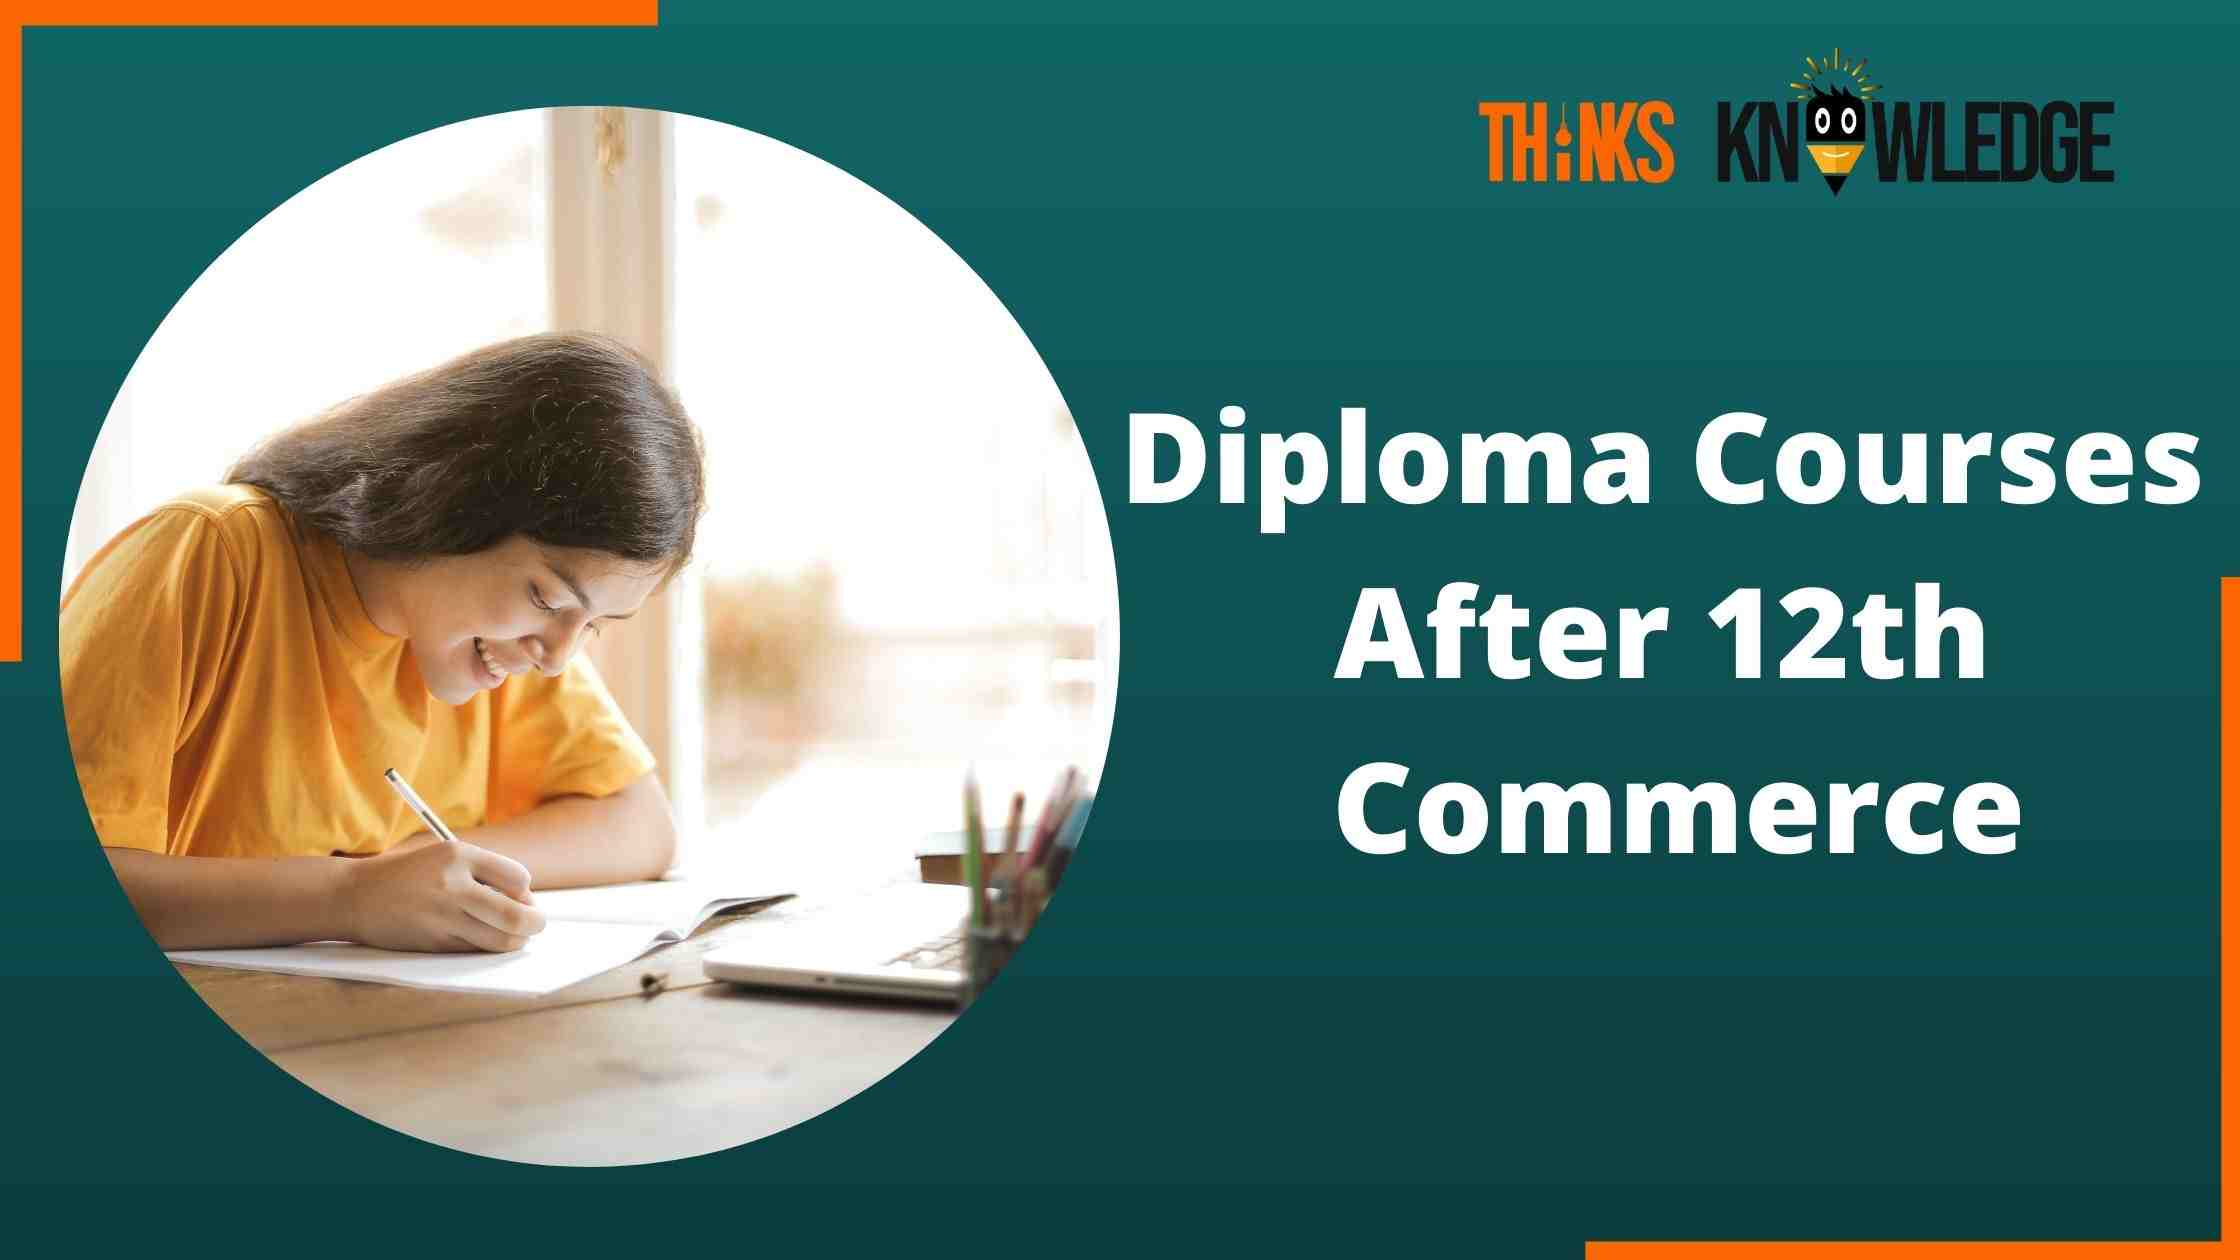 Diploma Courses After 12th Commerce